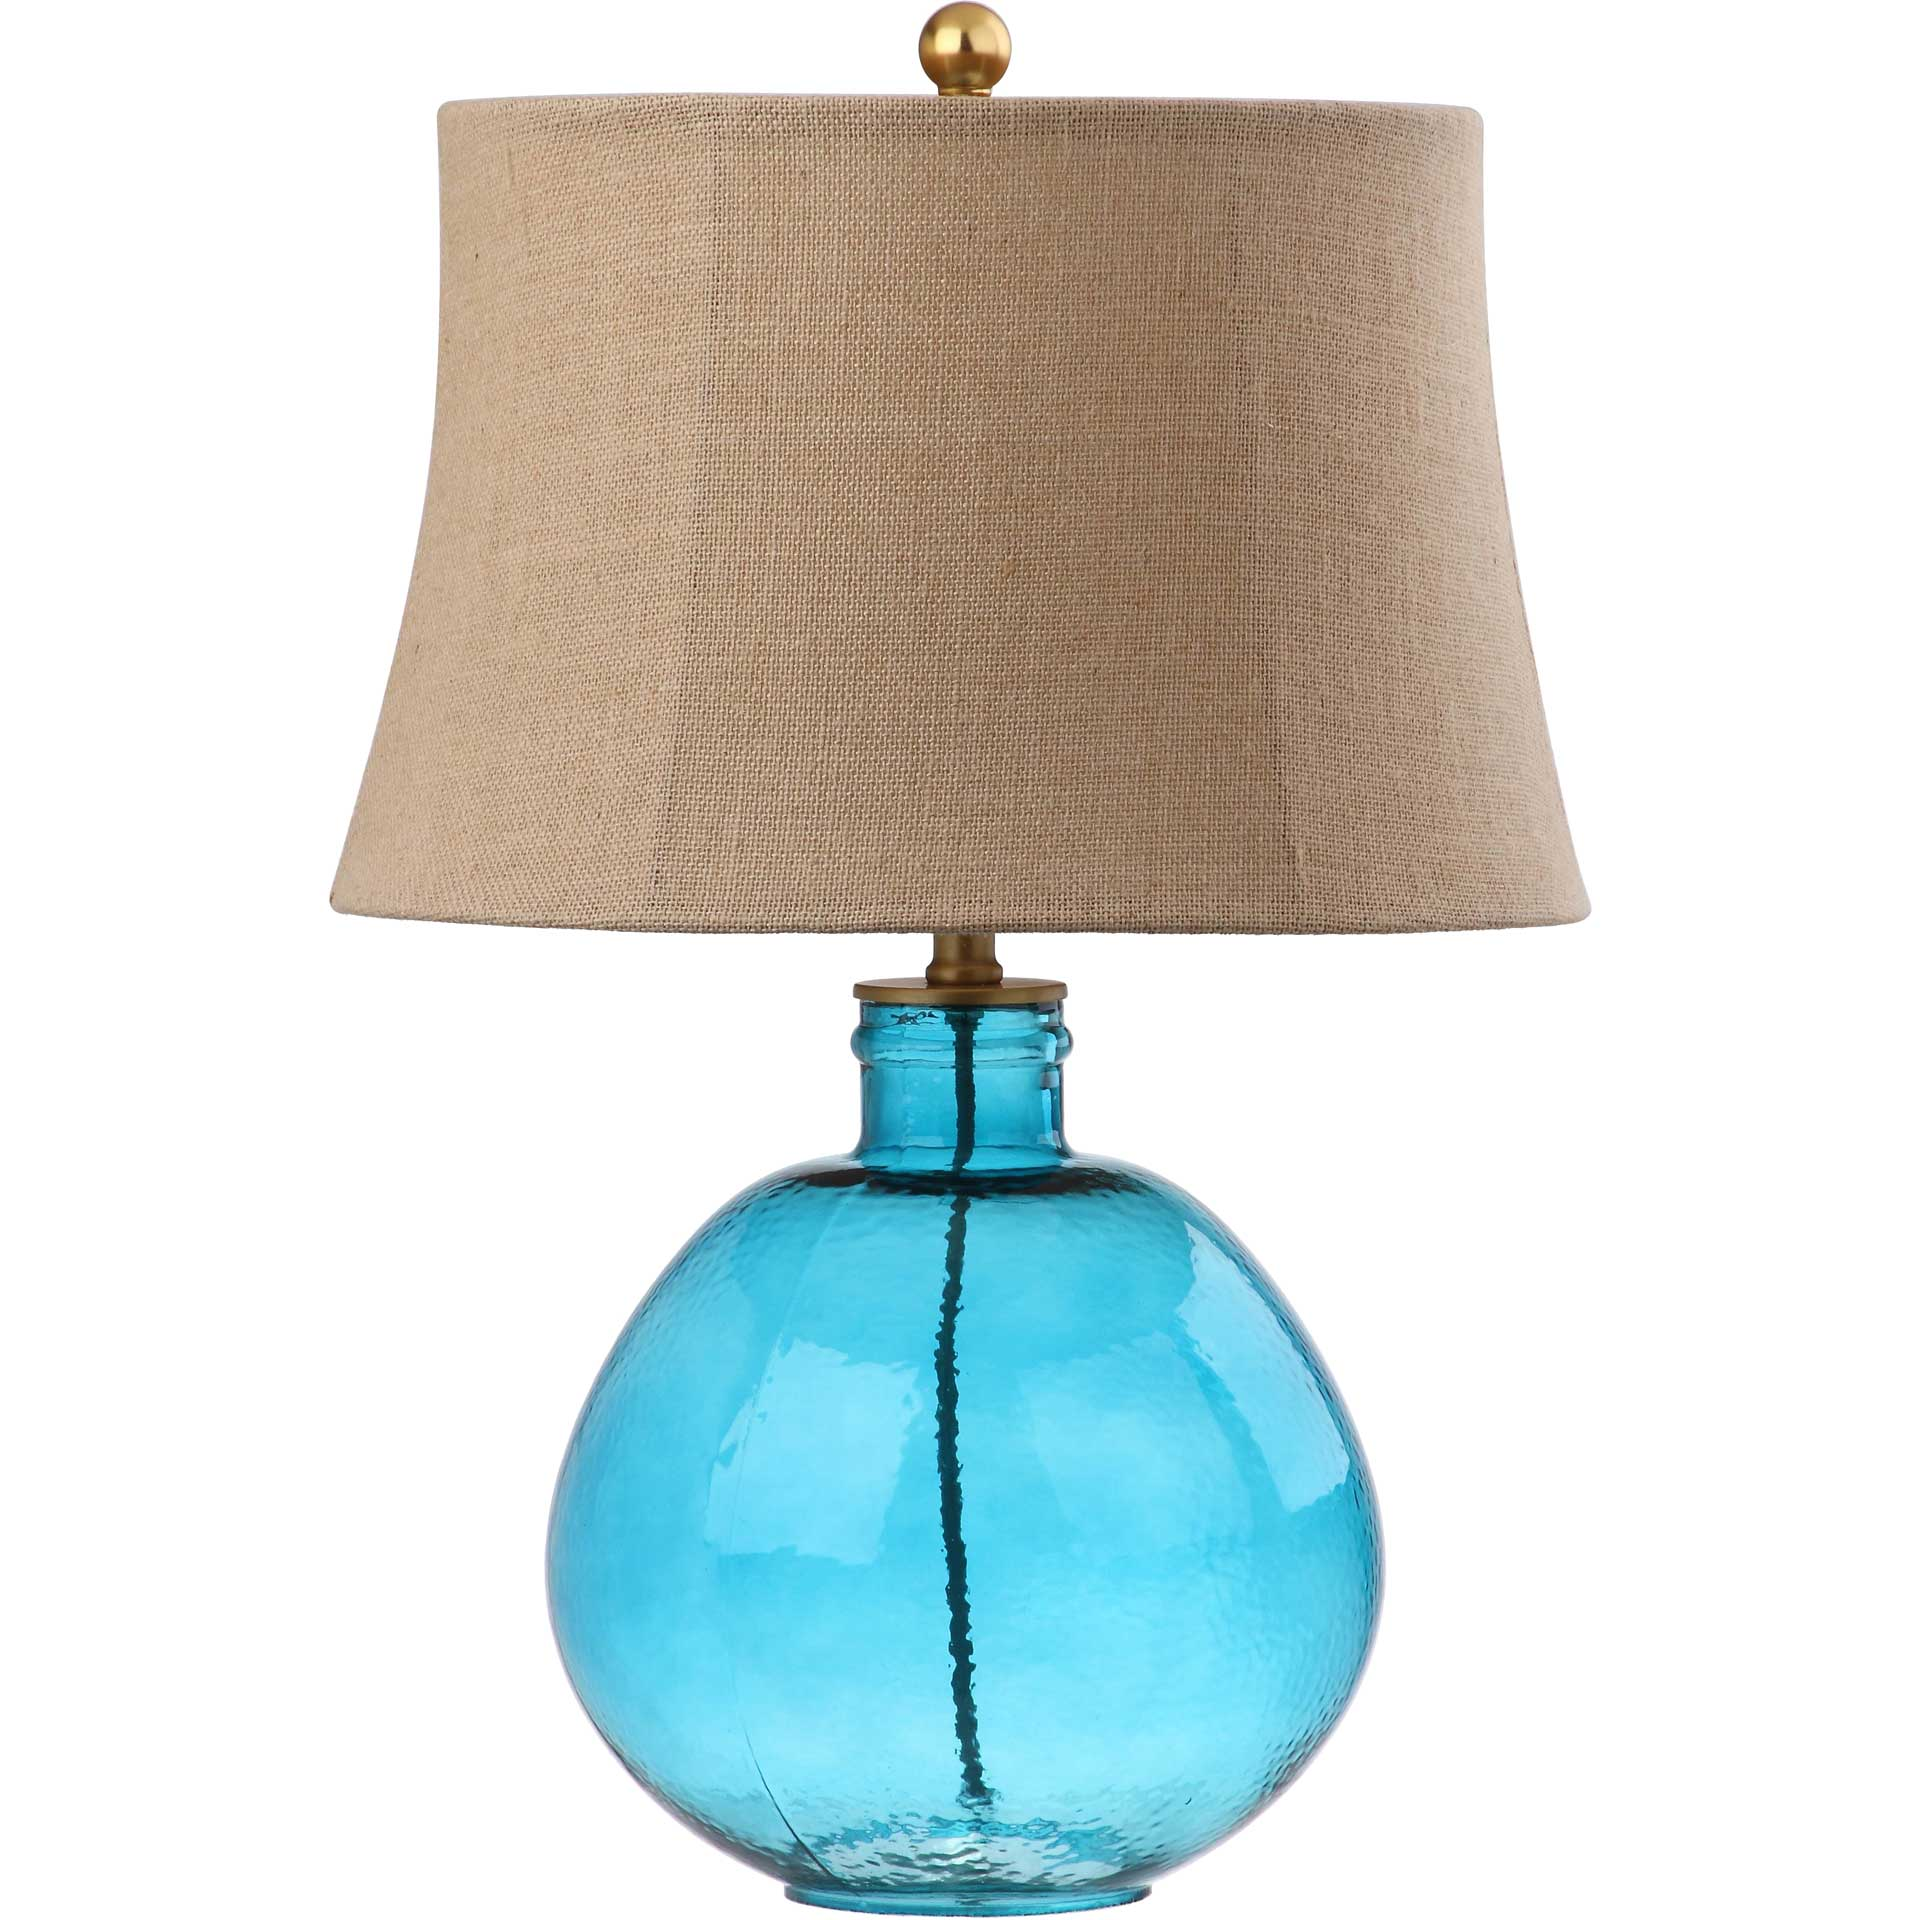 Raven Glass Table Lamp Blue